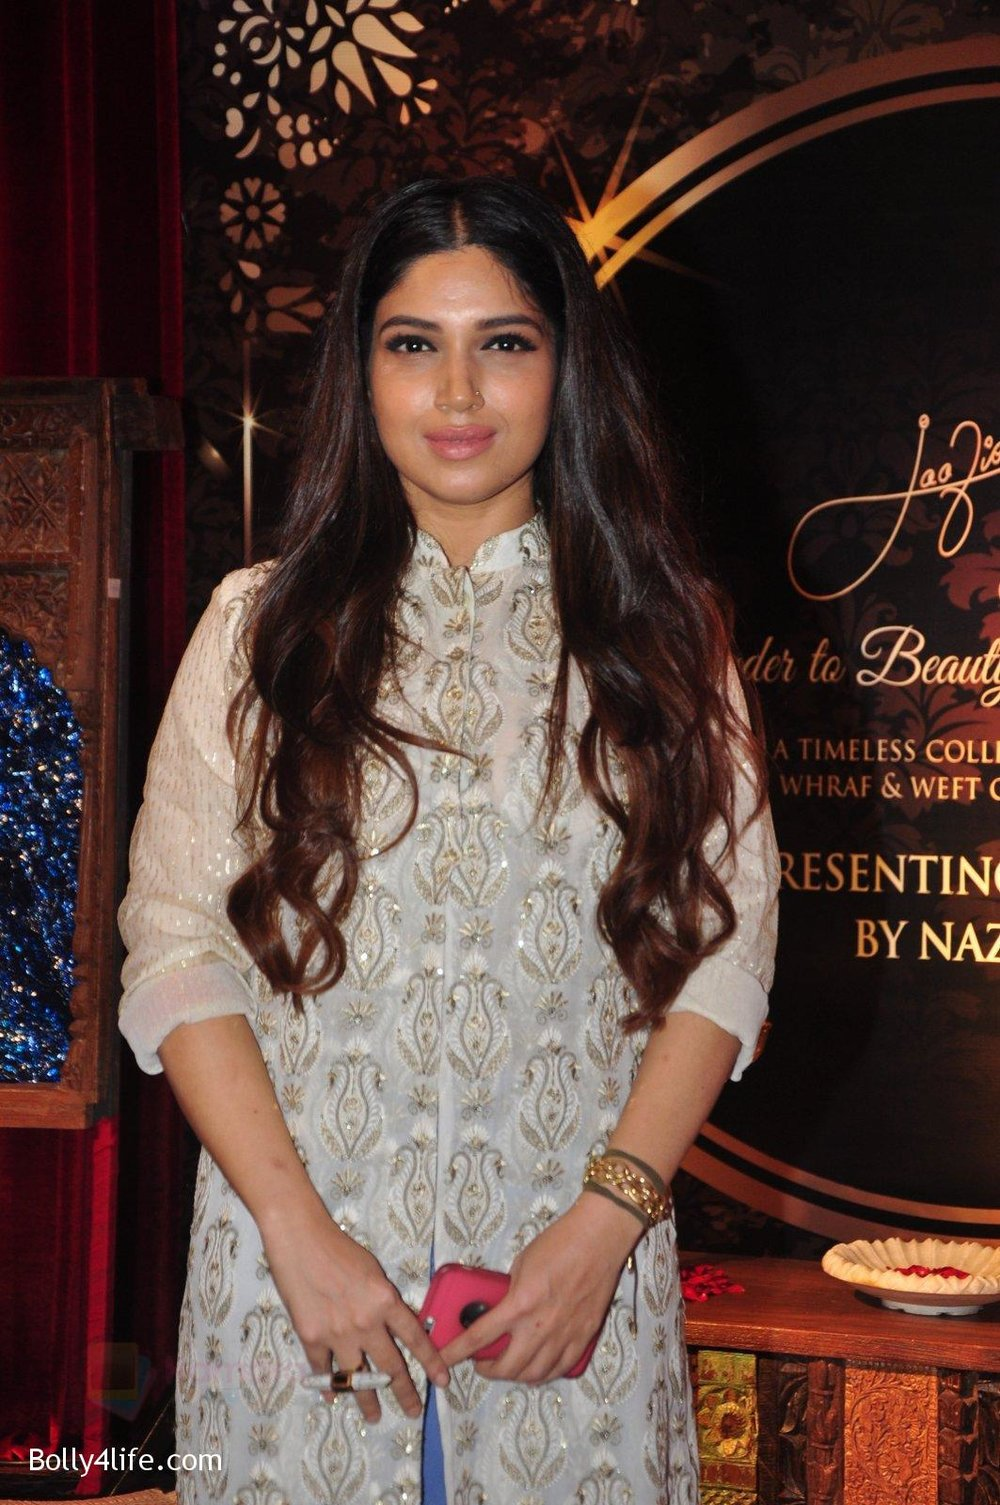 Bhumi-Pednekar-at-Naafia-Naazish-exhibition-on-1st-Oct-2016-34.jpg